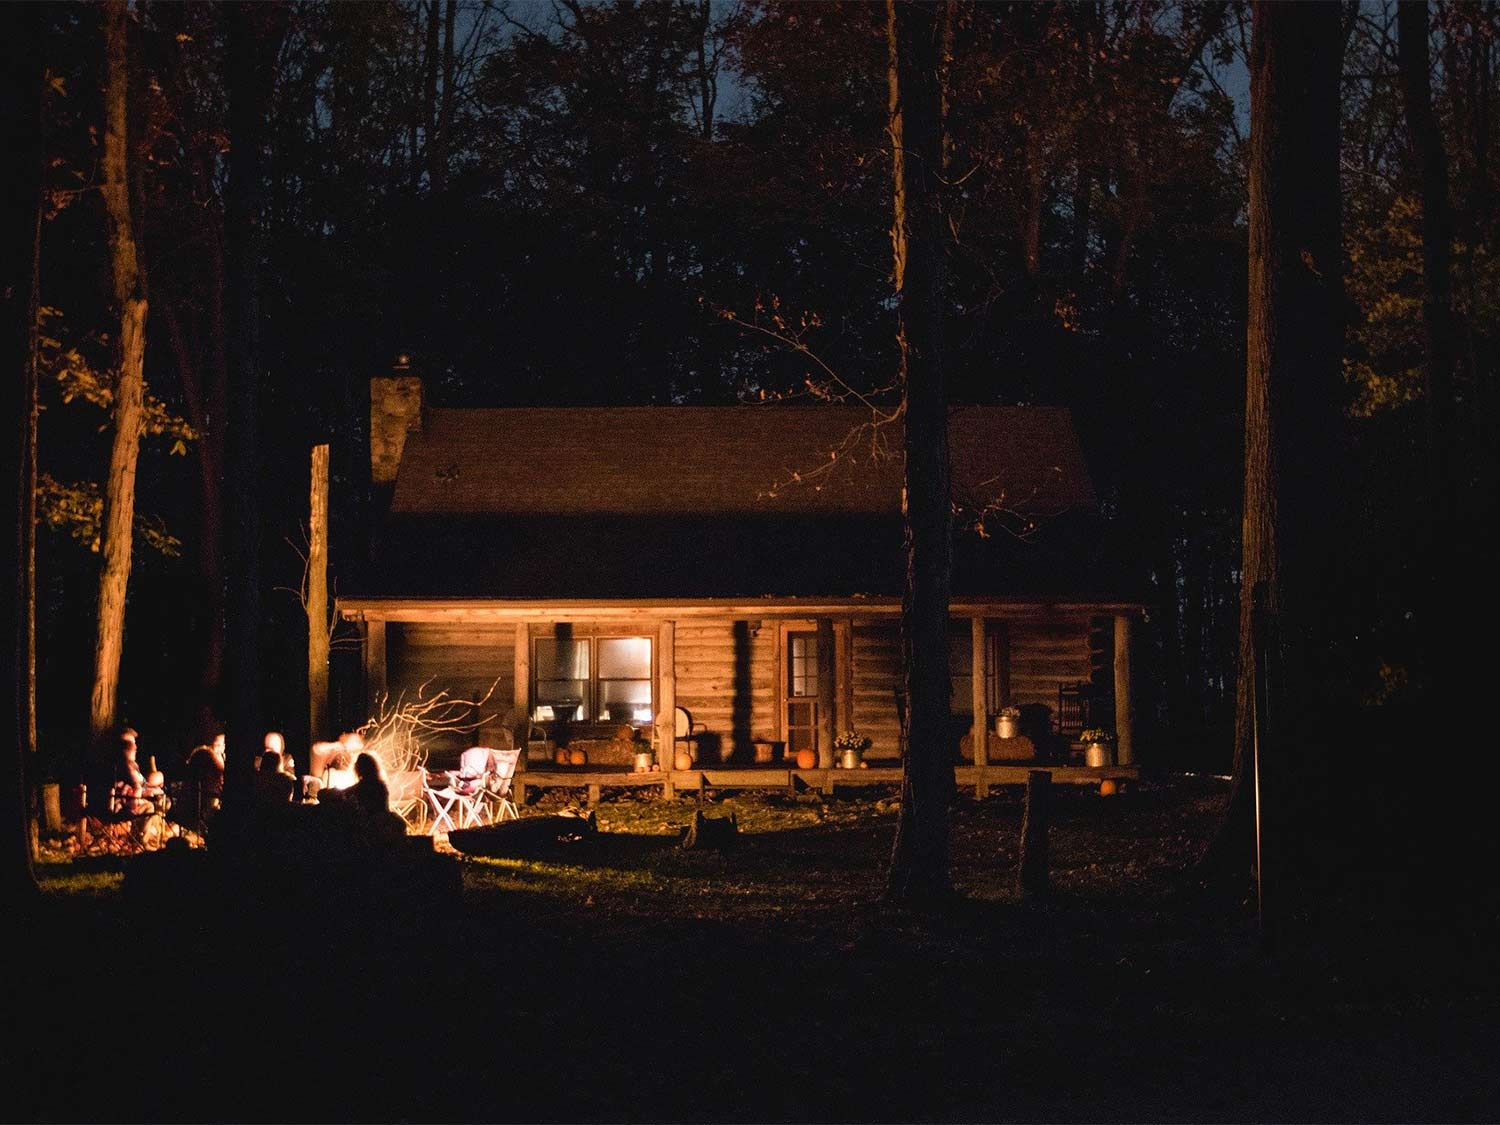 Hunters surrounding a campfire at night outside of a hunting cabin in the woods.